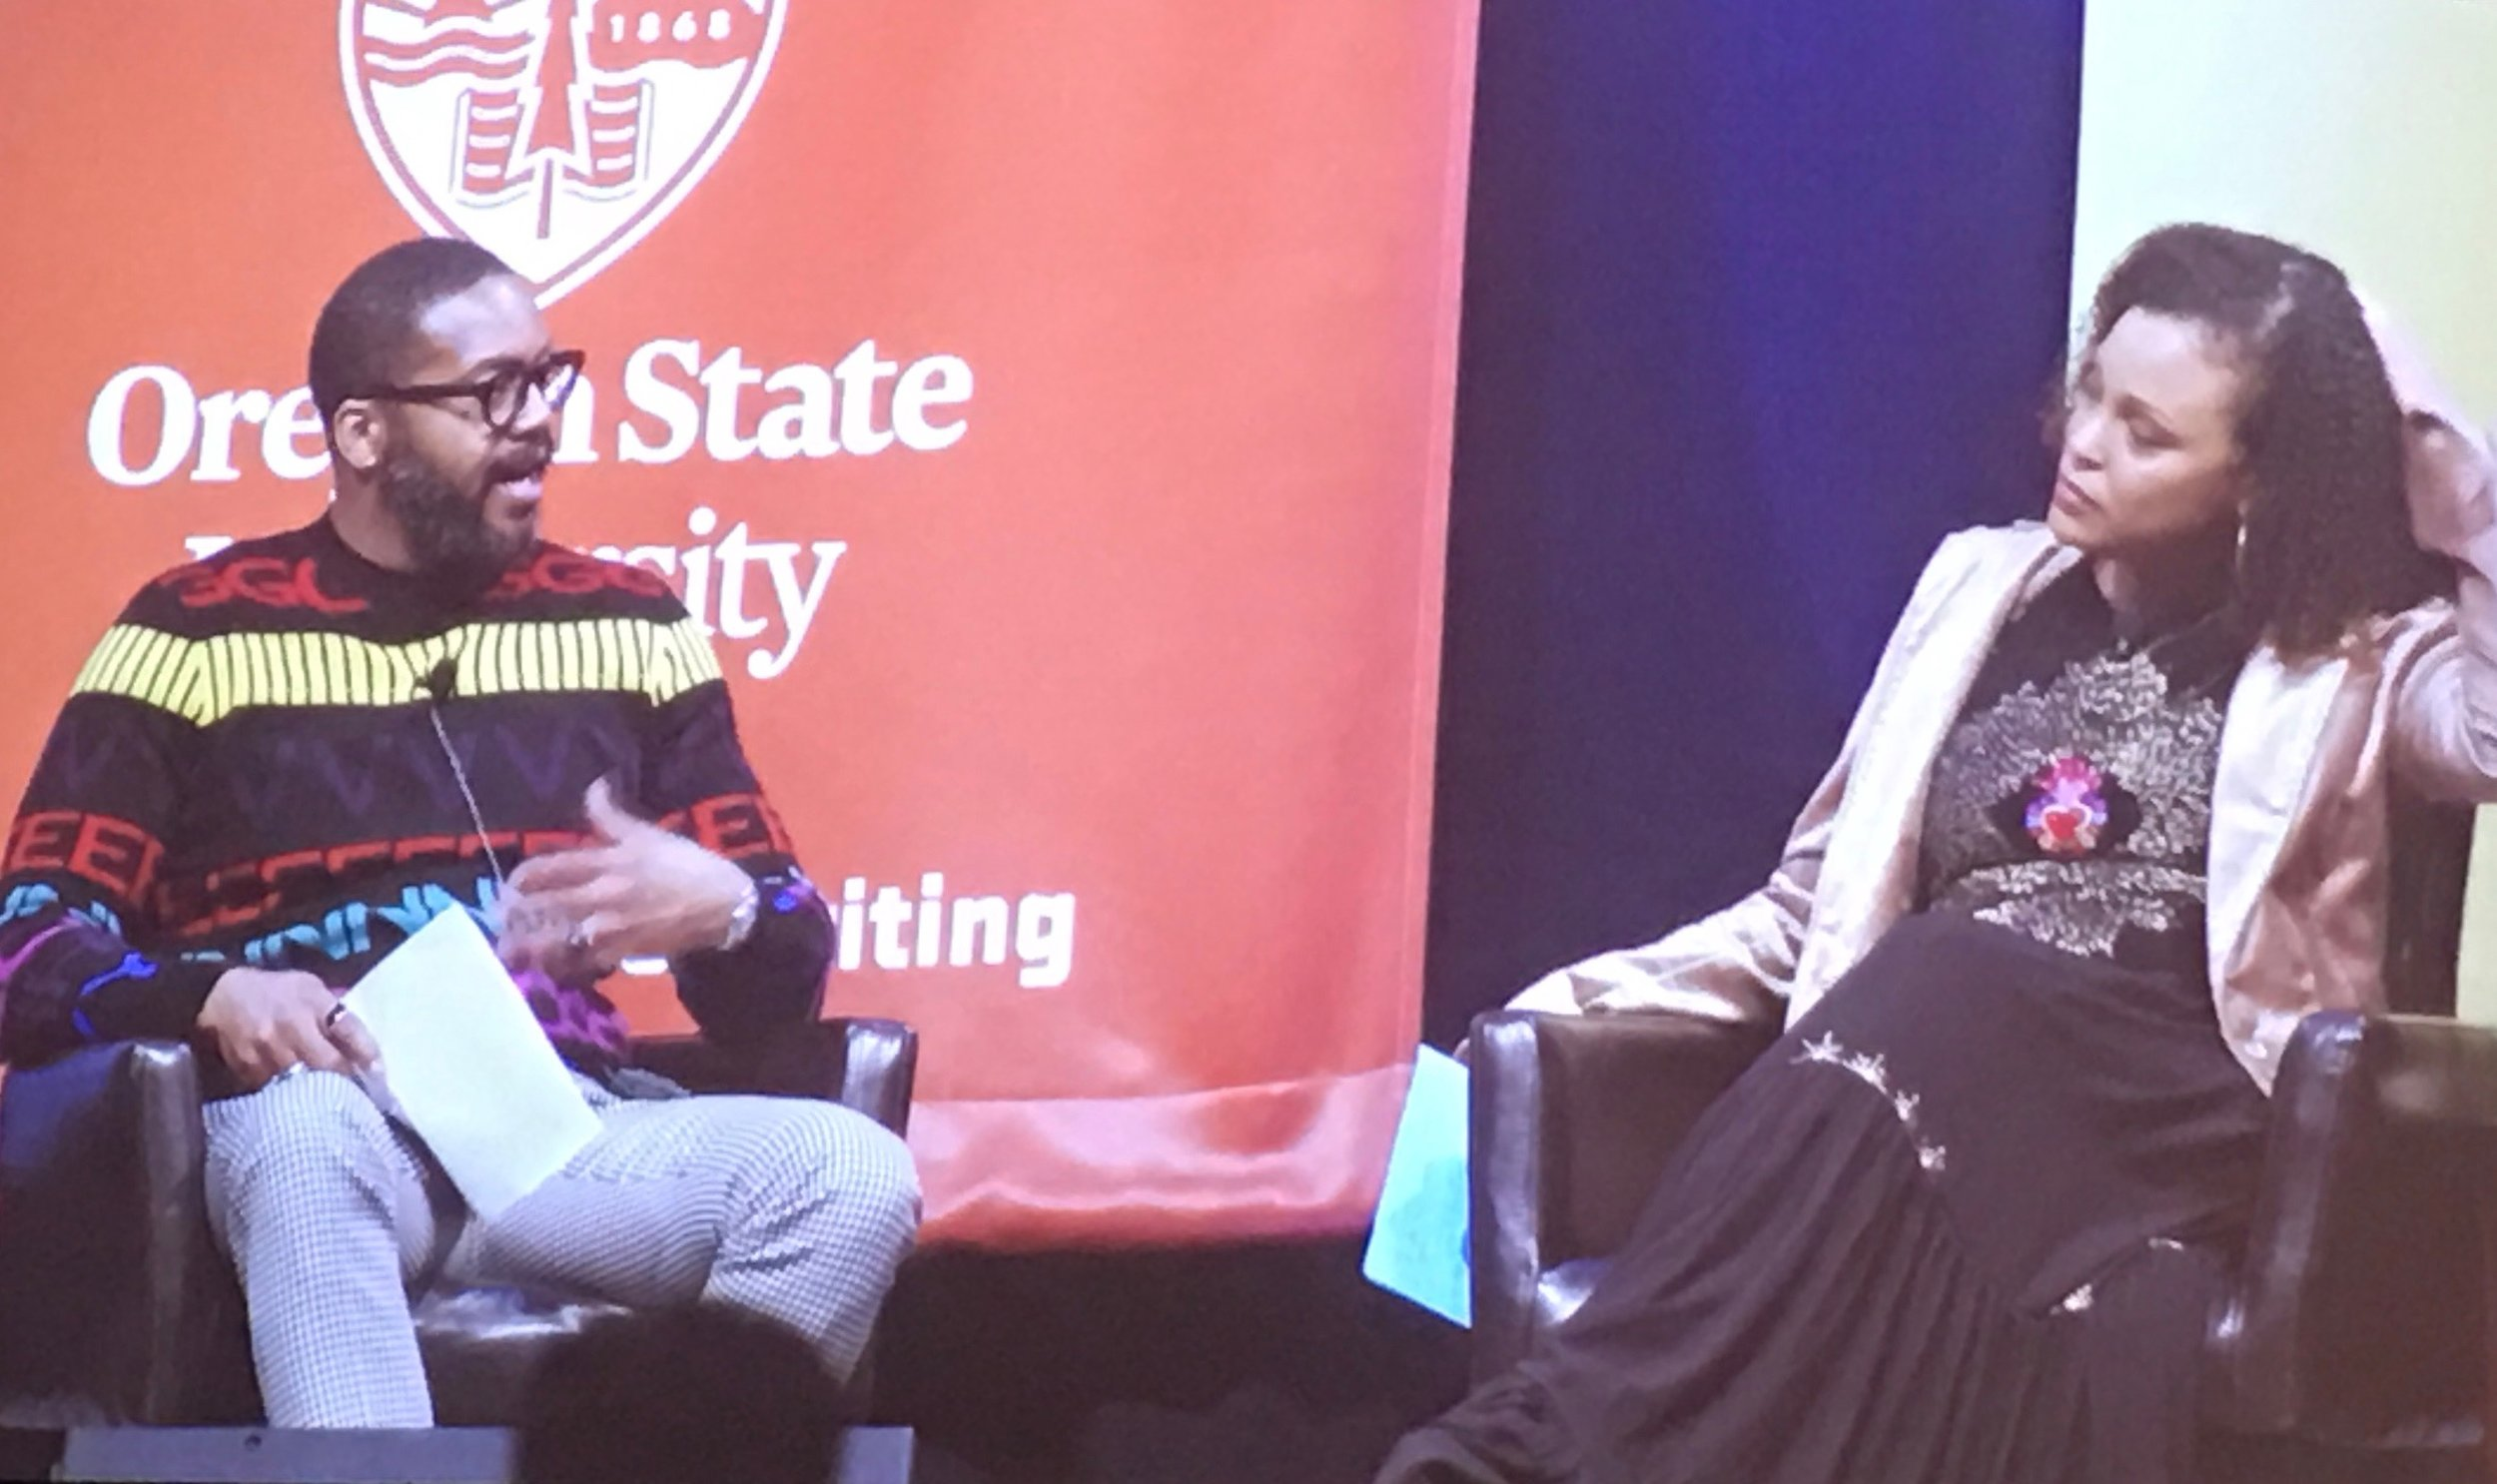 Mitchell S. Jackson and Jesmyn Ward in conversation